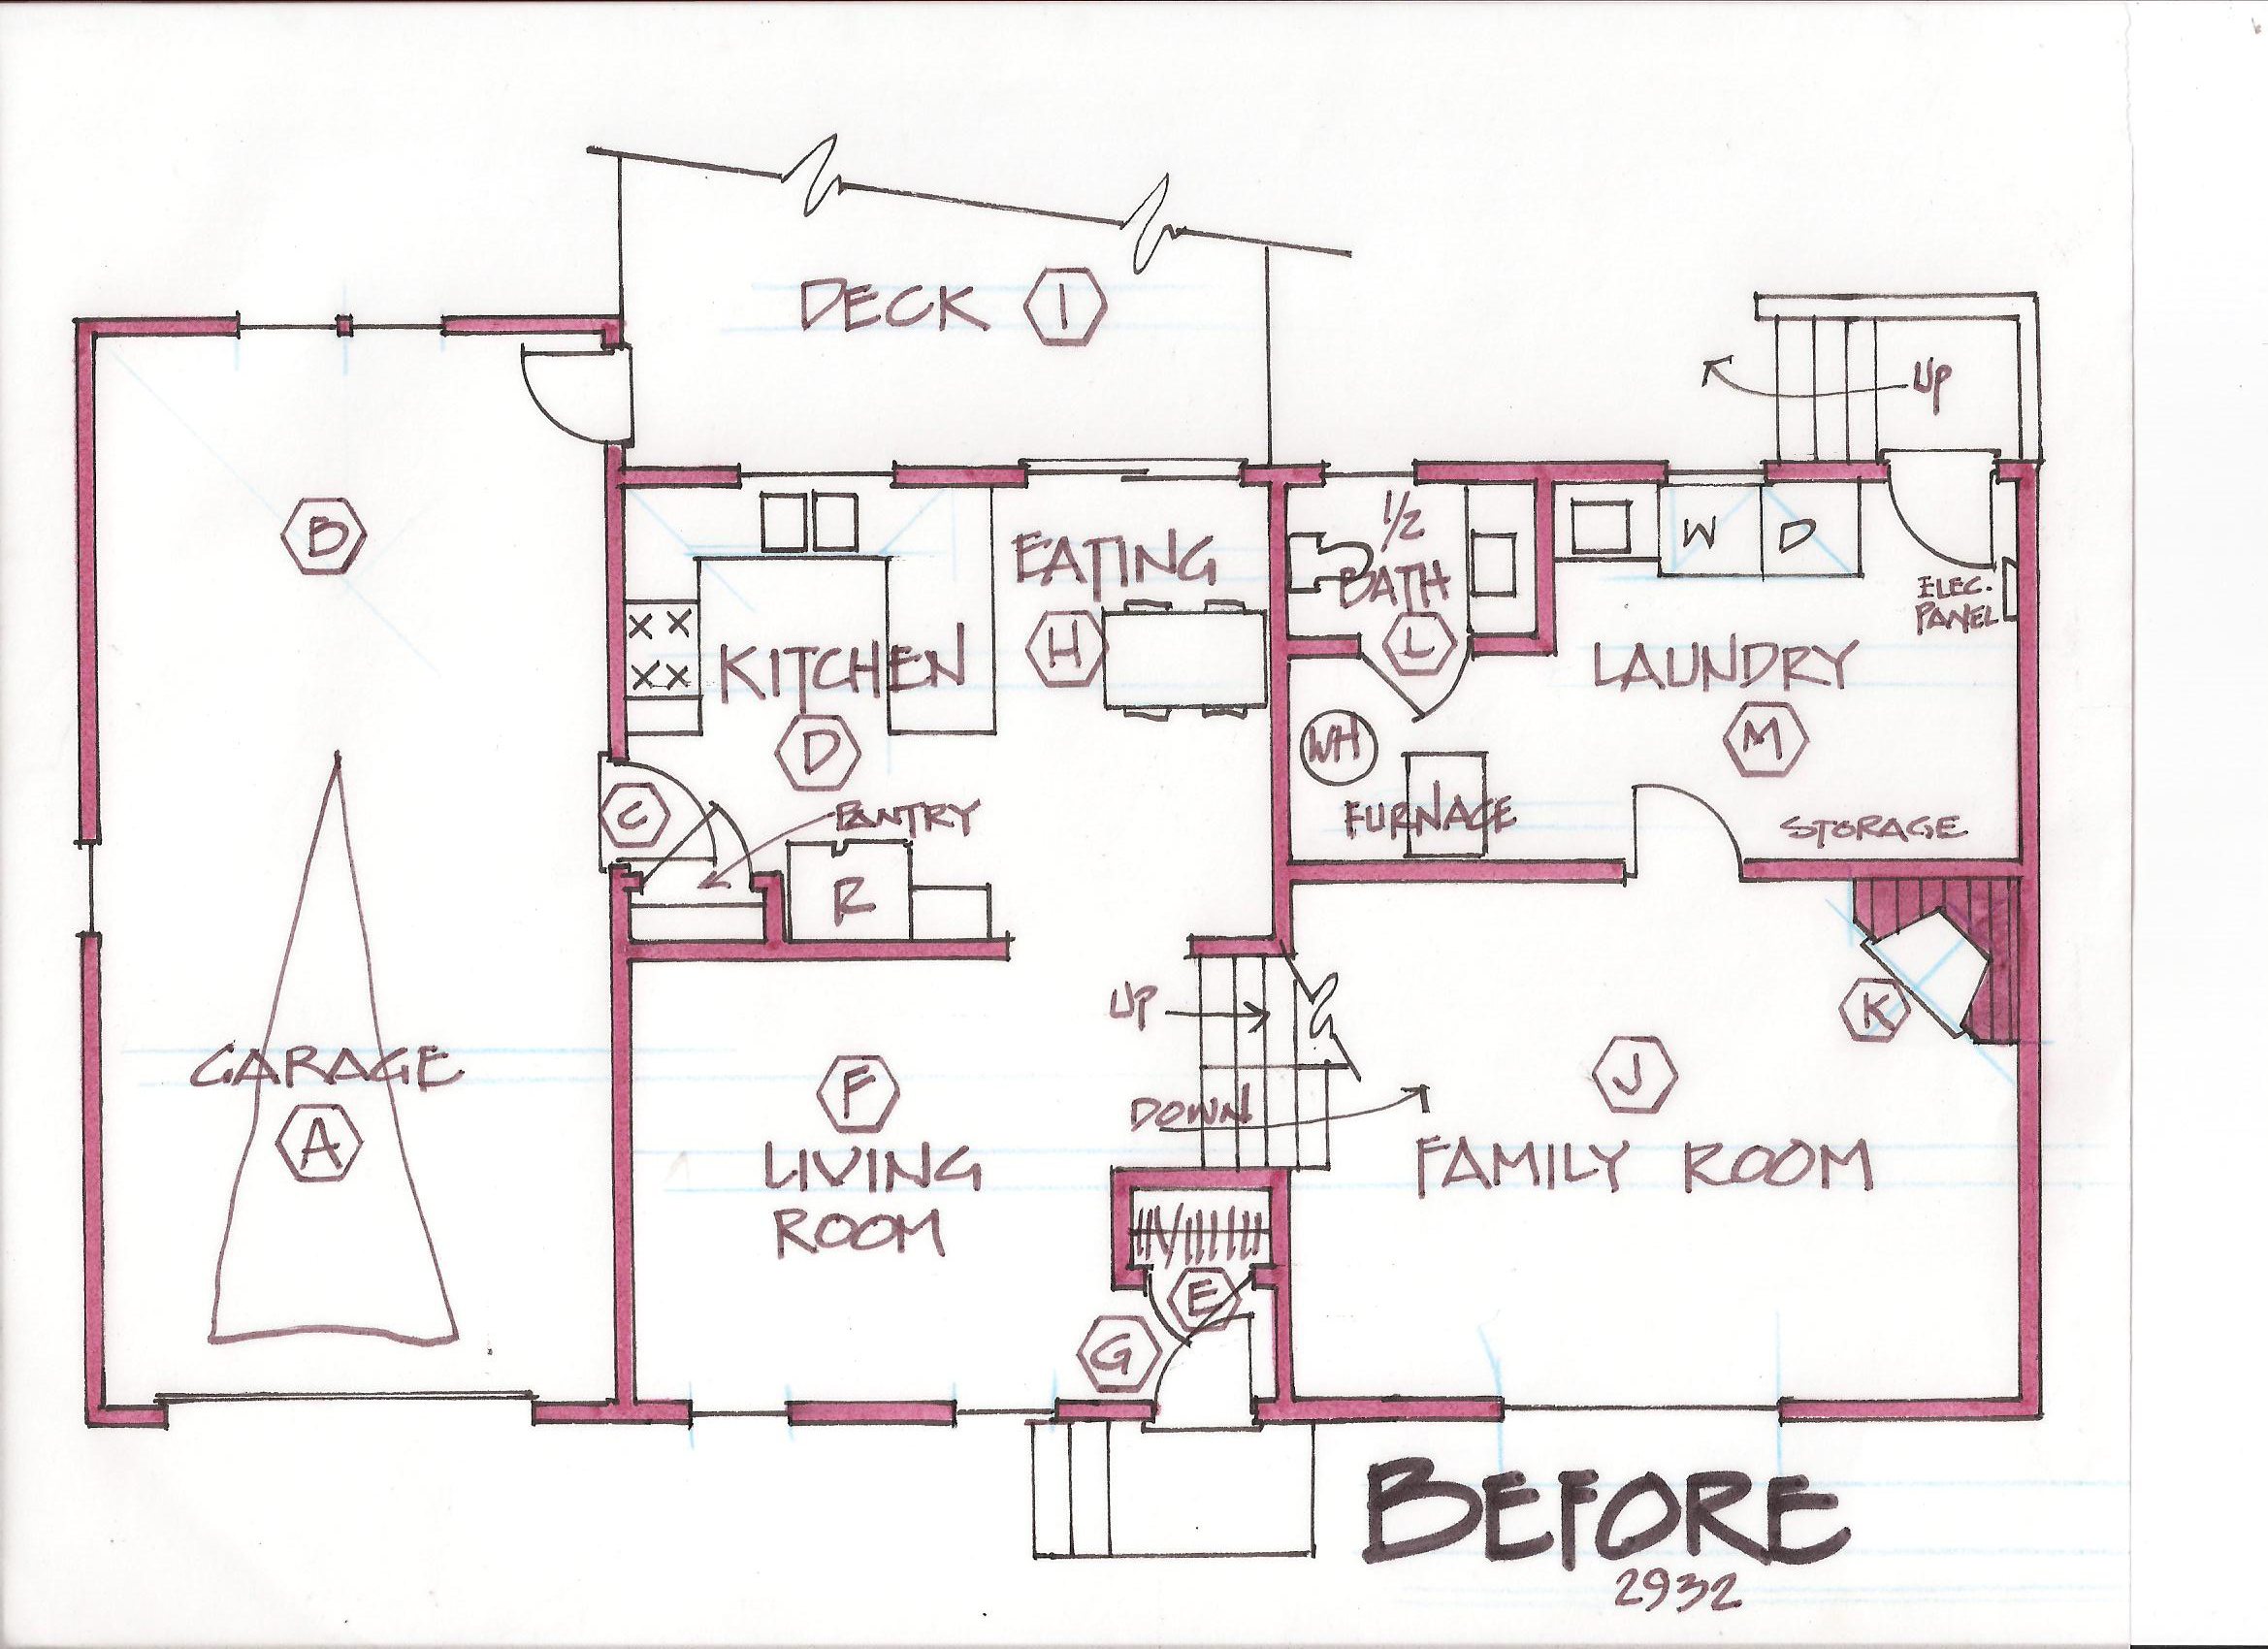 Taking On The Challenges Of Remodeling A Split Level Home